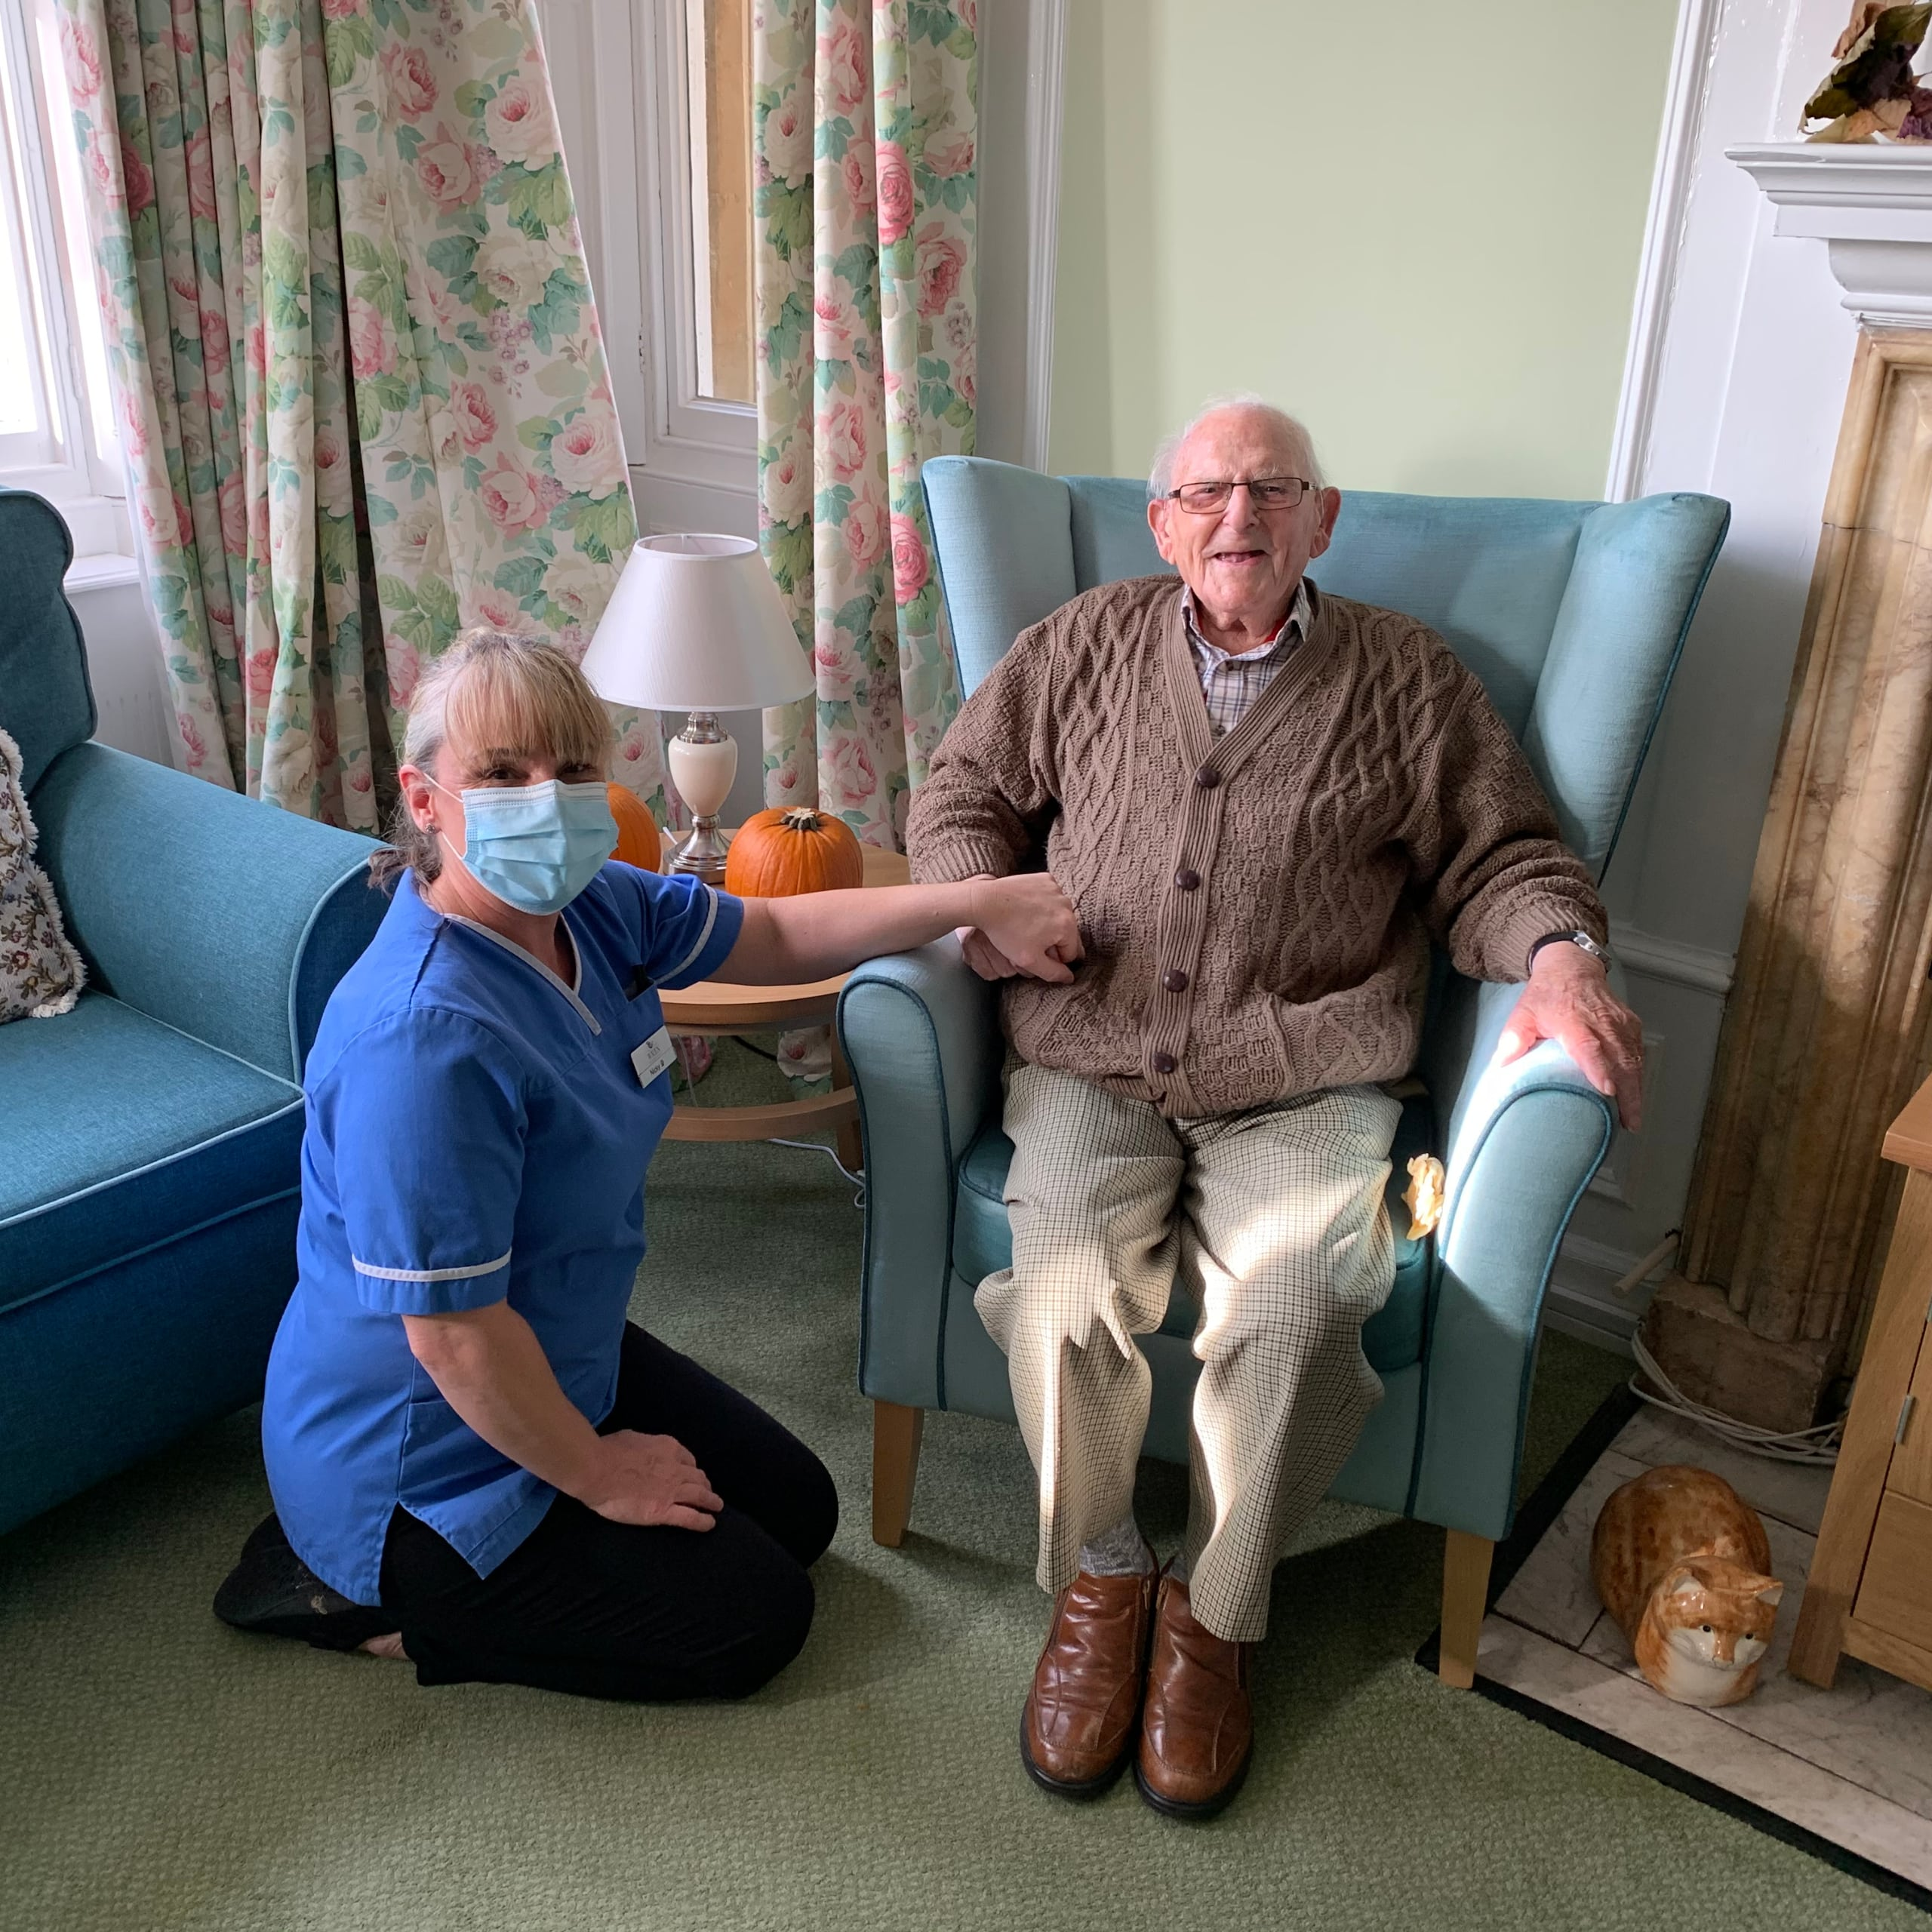 Featherton House team member Nicola Hutchings and resident Geoffrey Hillman